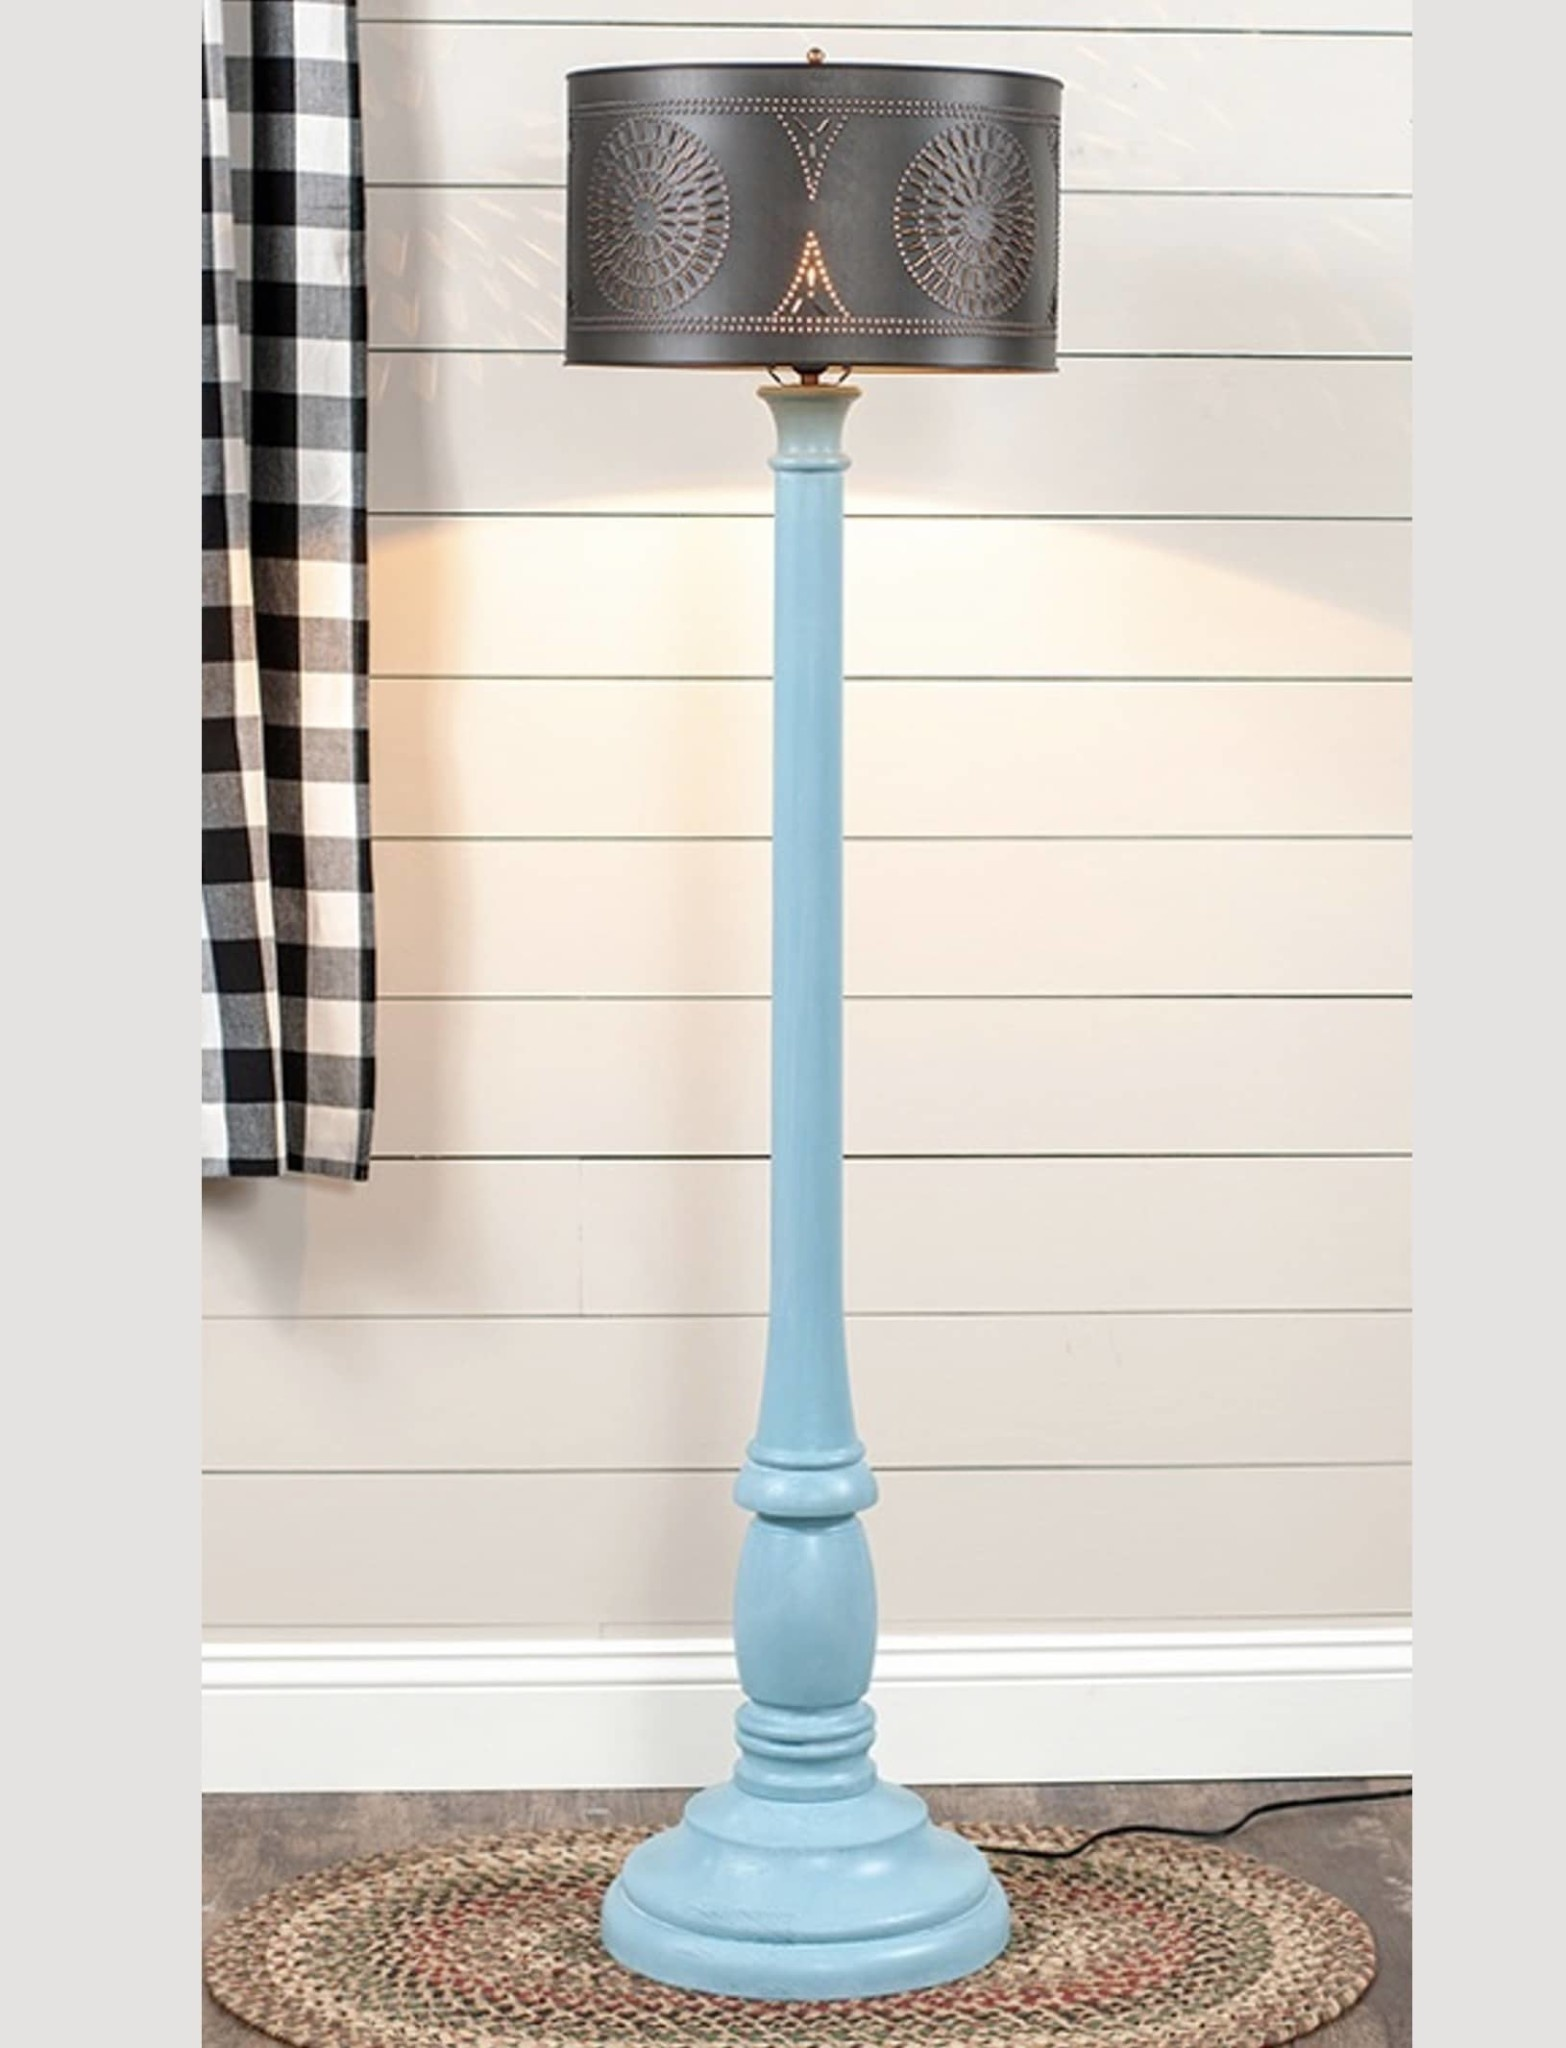 Irvin's Tinware Brinton Floor Lamp with Punched Metal Shade